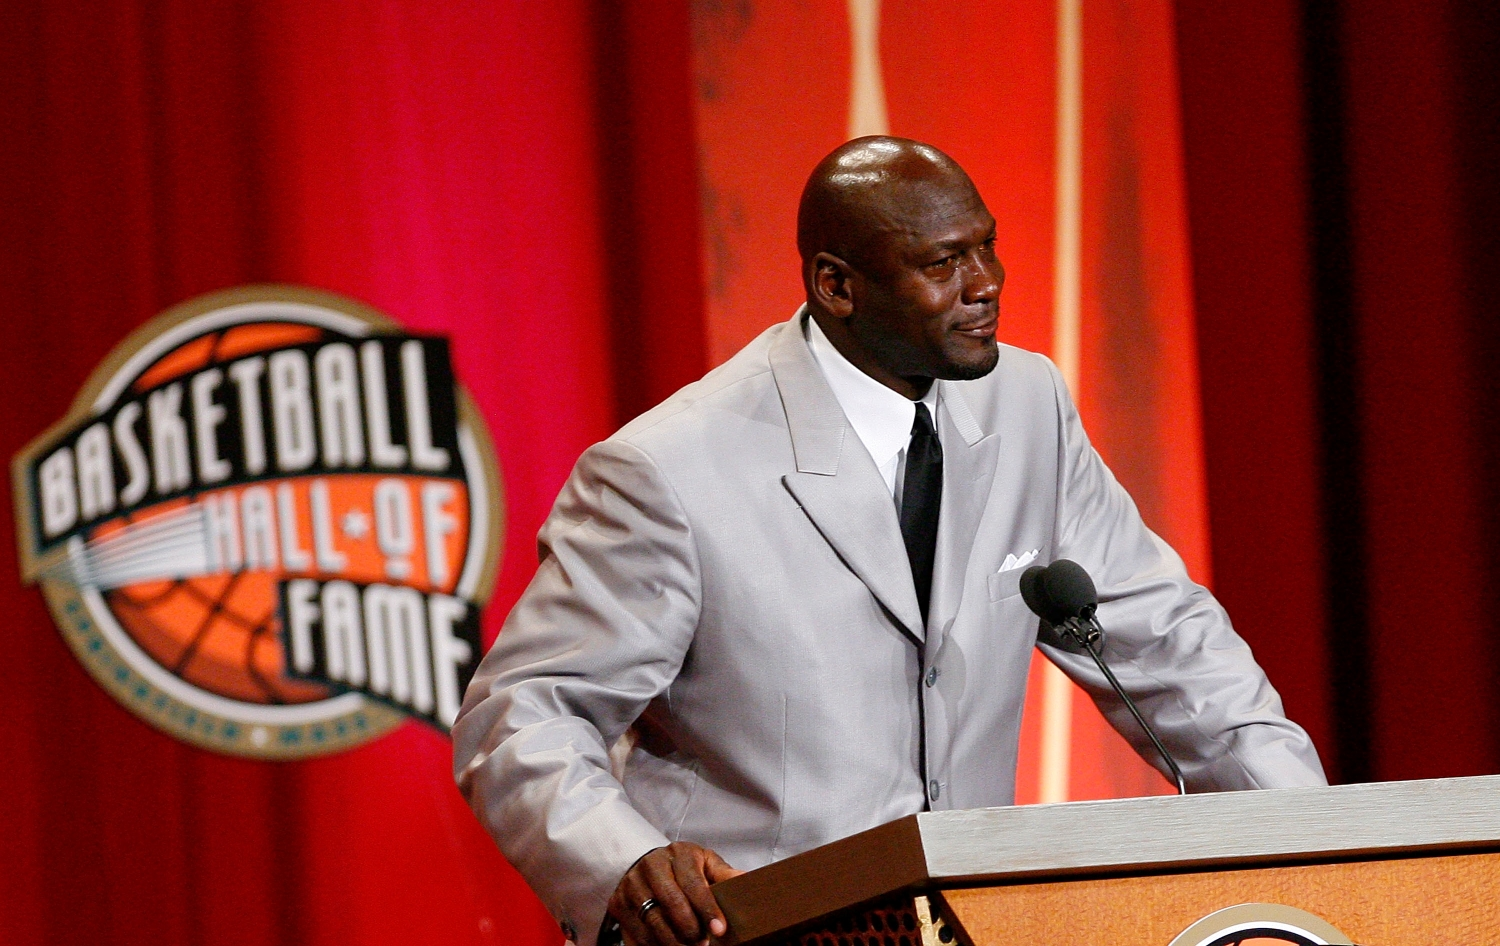 Michael Jordan Fired a Final Shot at the Bulls' Biggest Villain During His Spirited Hall of Fame Speech